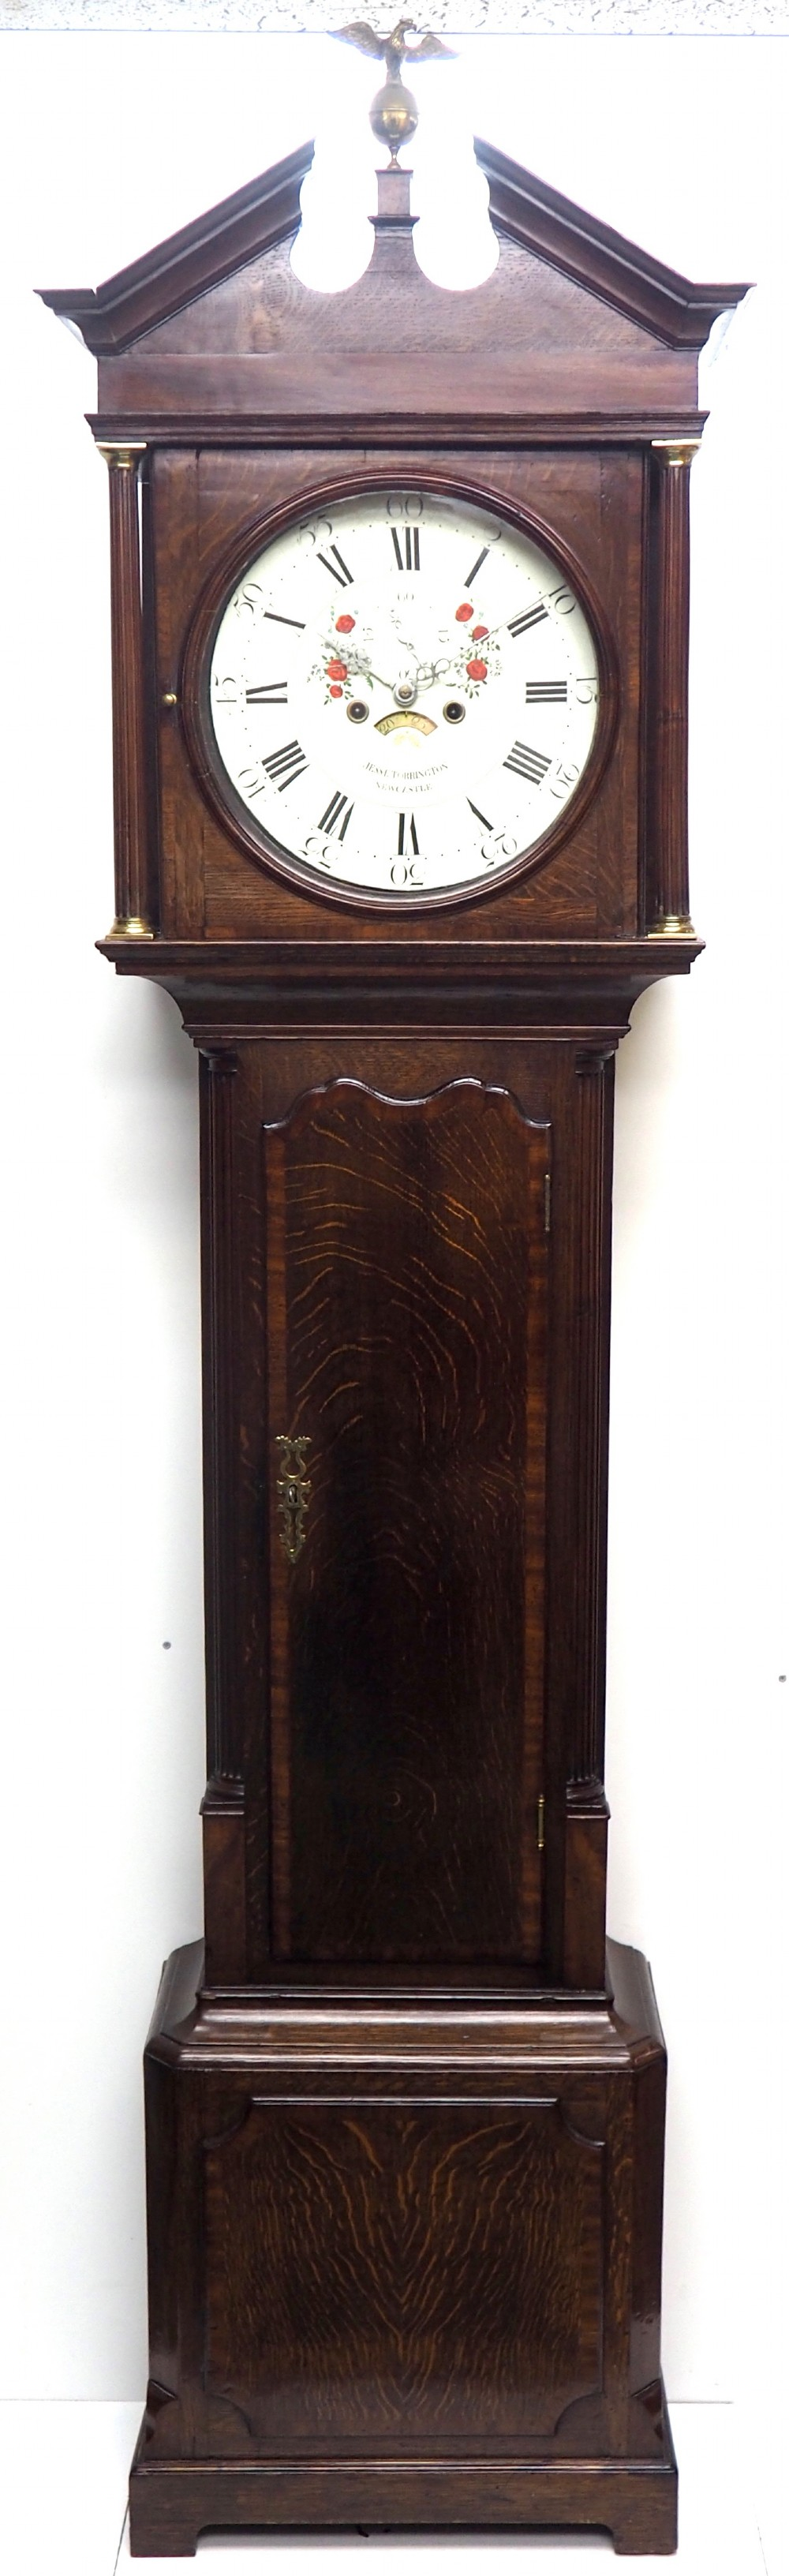 antique 8 day longcase clock fine british oak grandfather clock with painted round dial